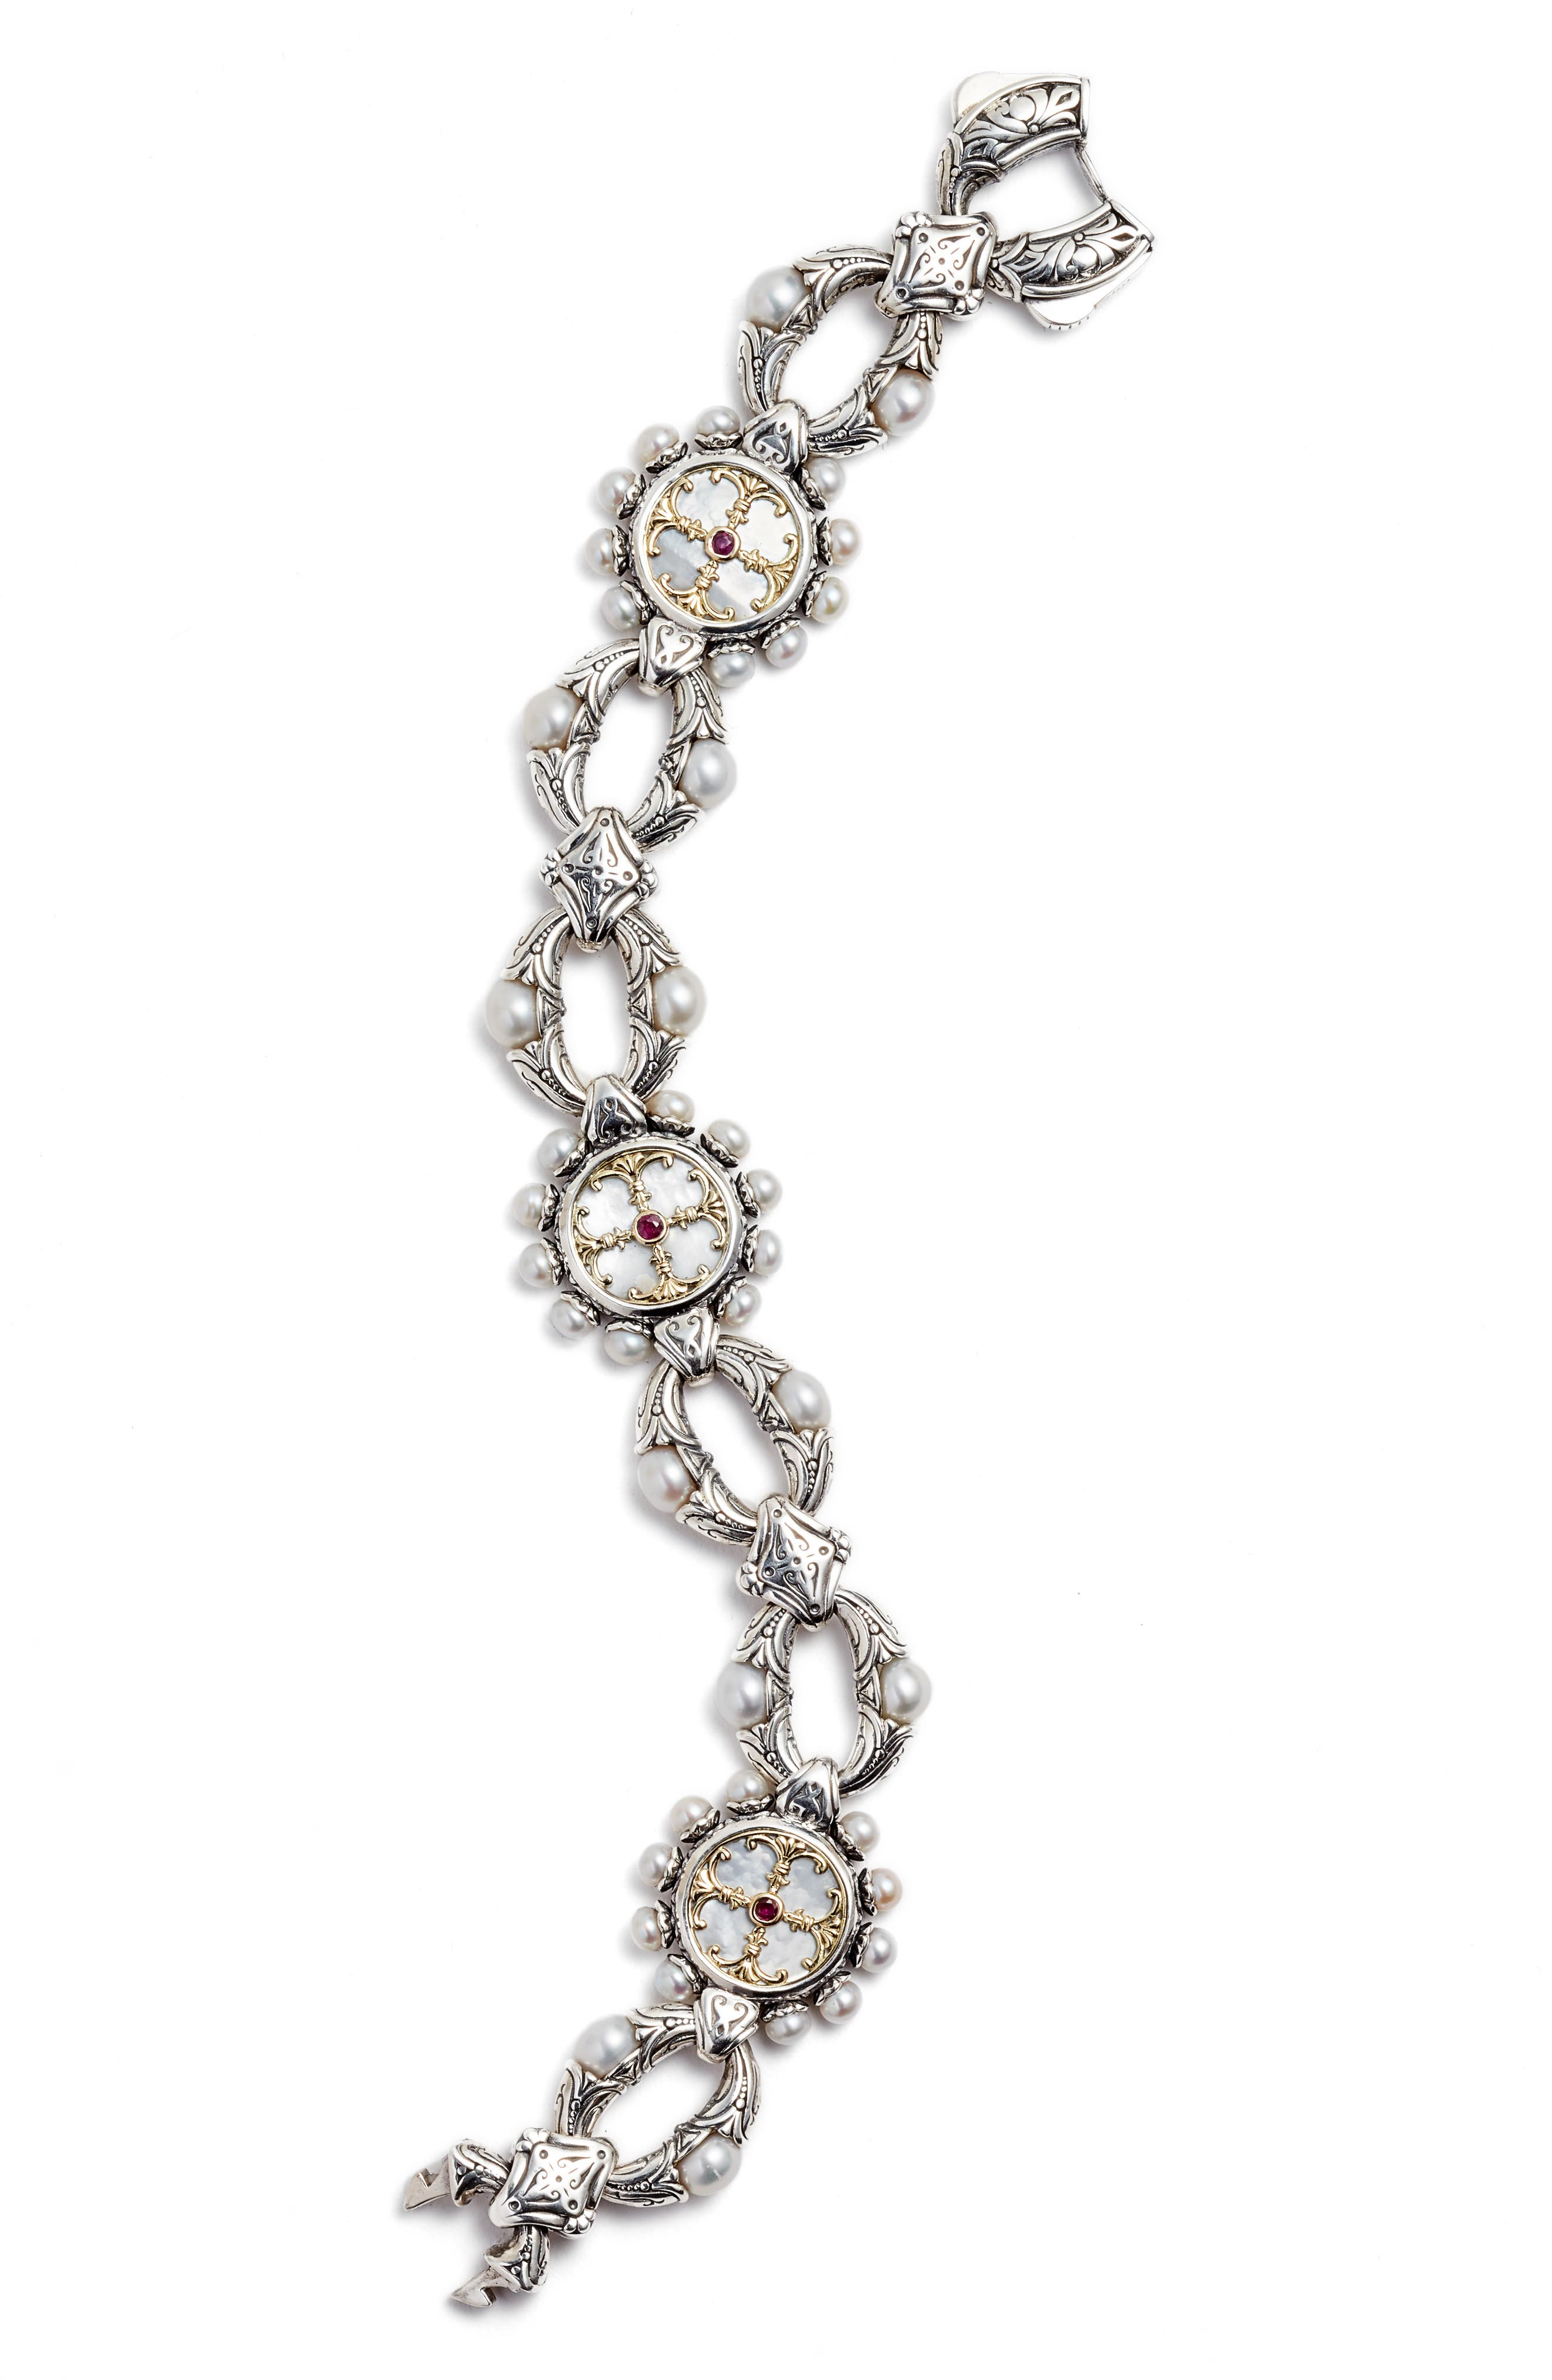 Silver Mother-of-Pearl & Ruby Bracelet,                             Main thumbnail 1, color,                             SILVER/ GOLD/ RED/ WHITE